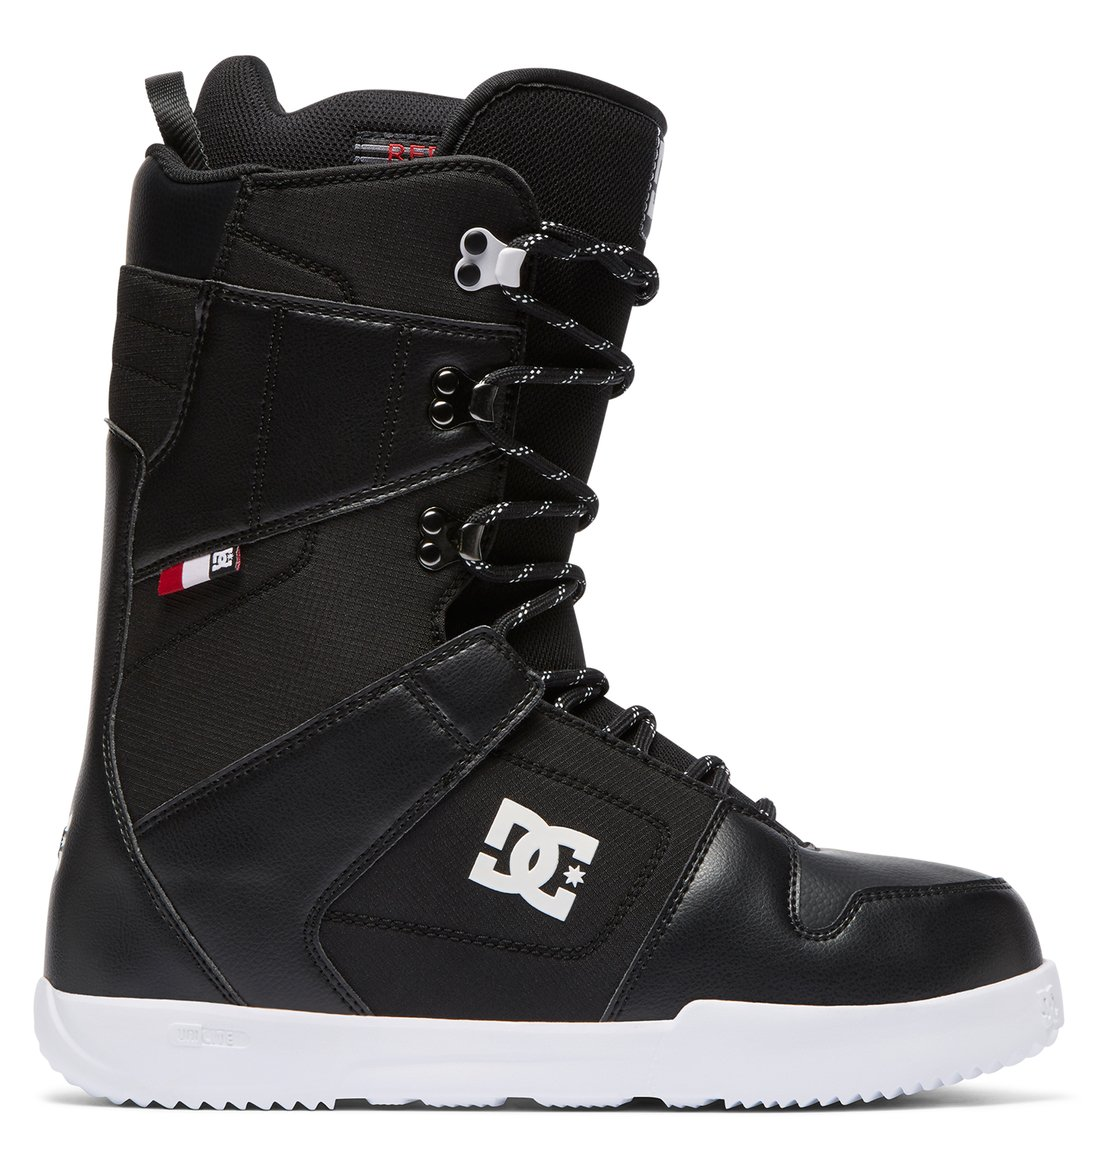 7b7c6177d7c Phase Lace-Up Snowboard Boots